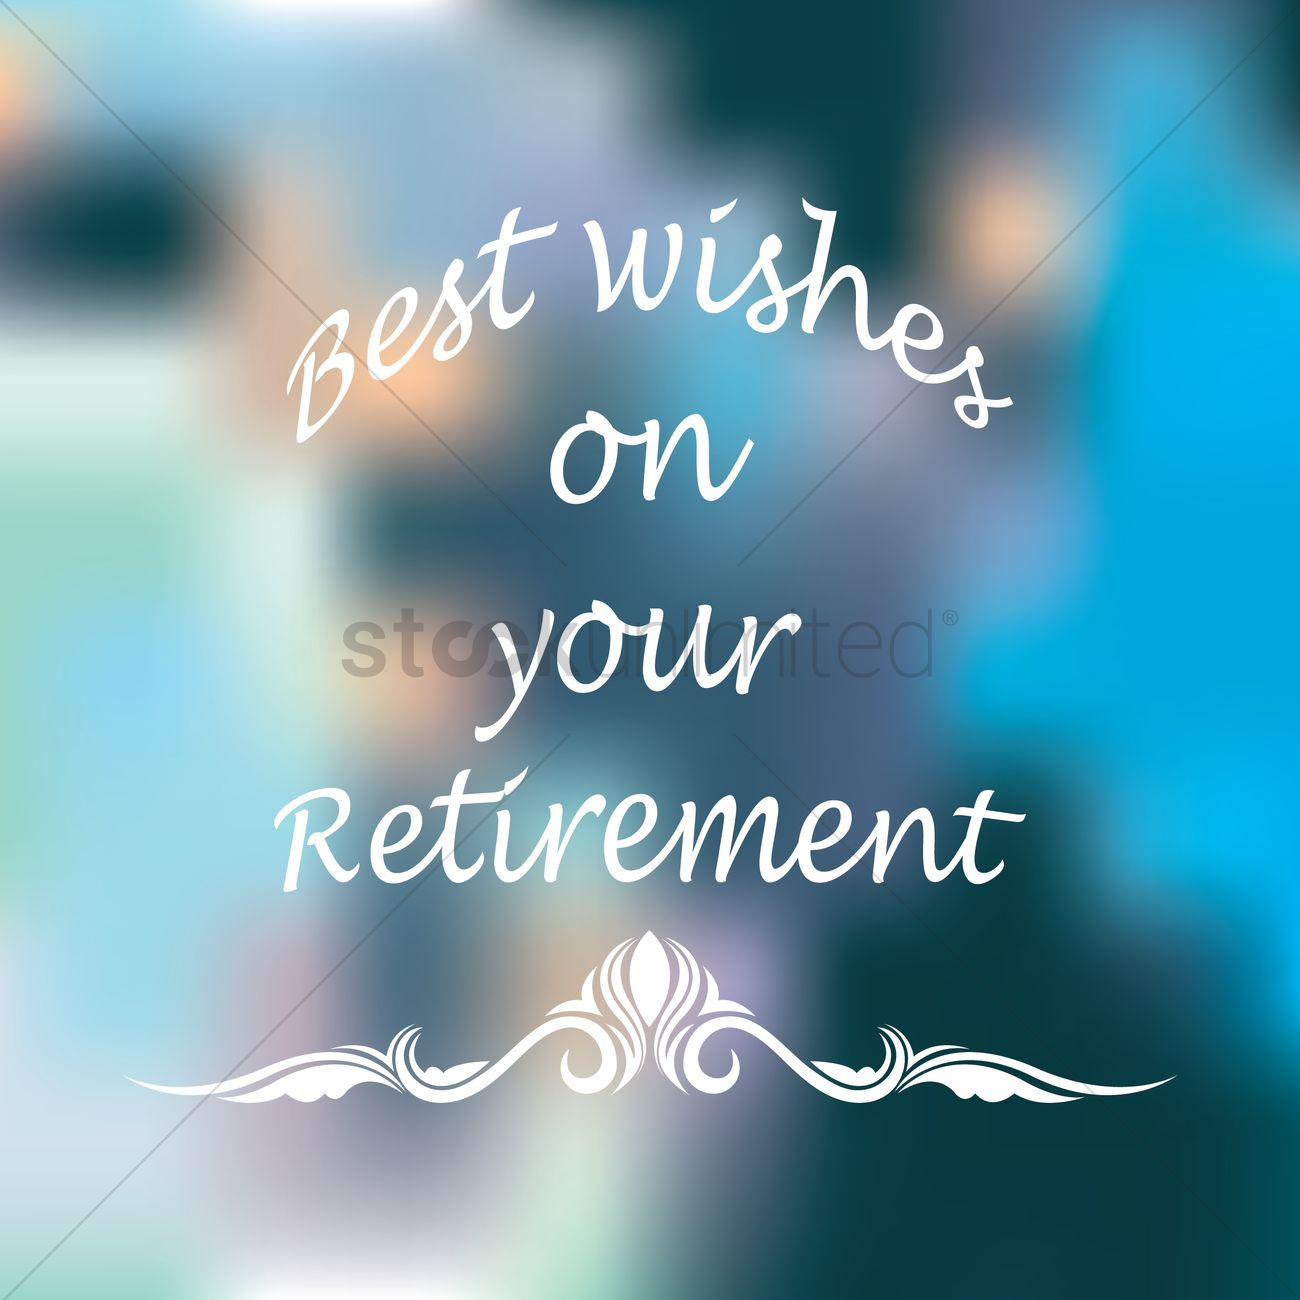 Best wishes on your retirement vector image 1827330 stockunlimited best wishes on your retirement vector graphic kristyandbryce Images